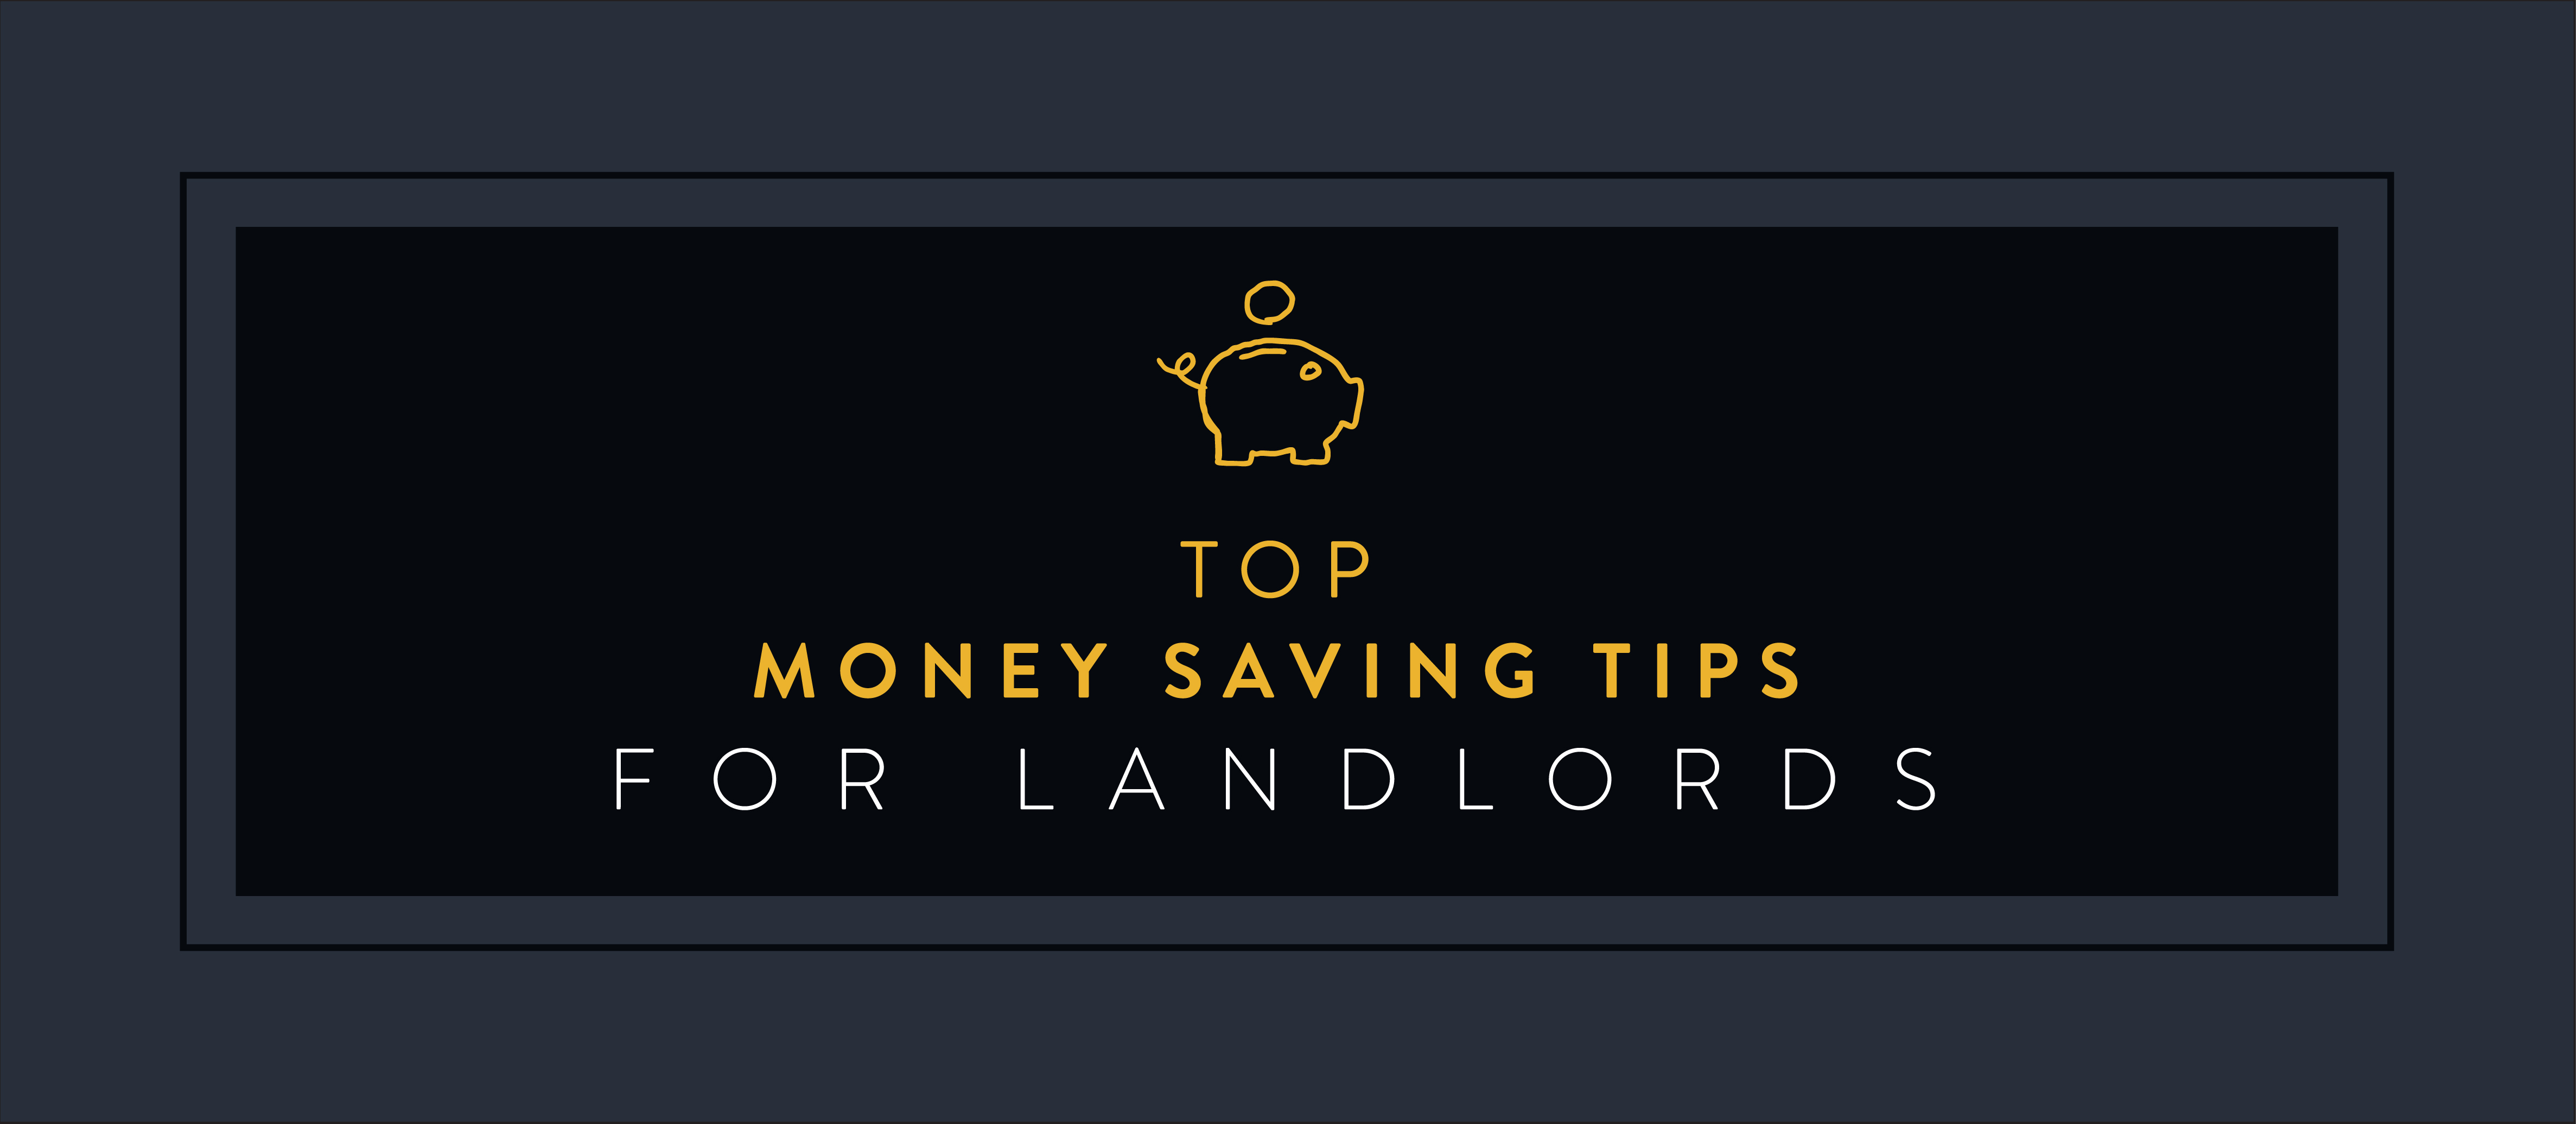 6 Top money saving tips for landlords